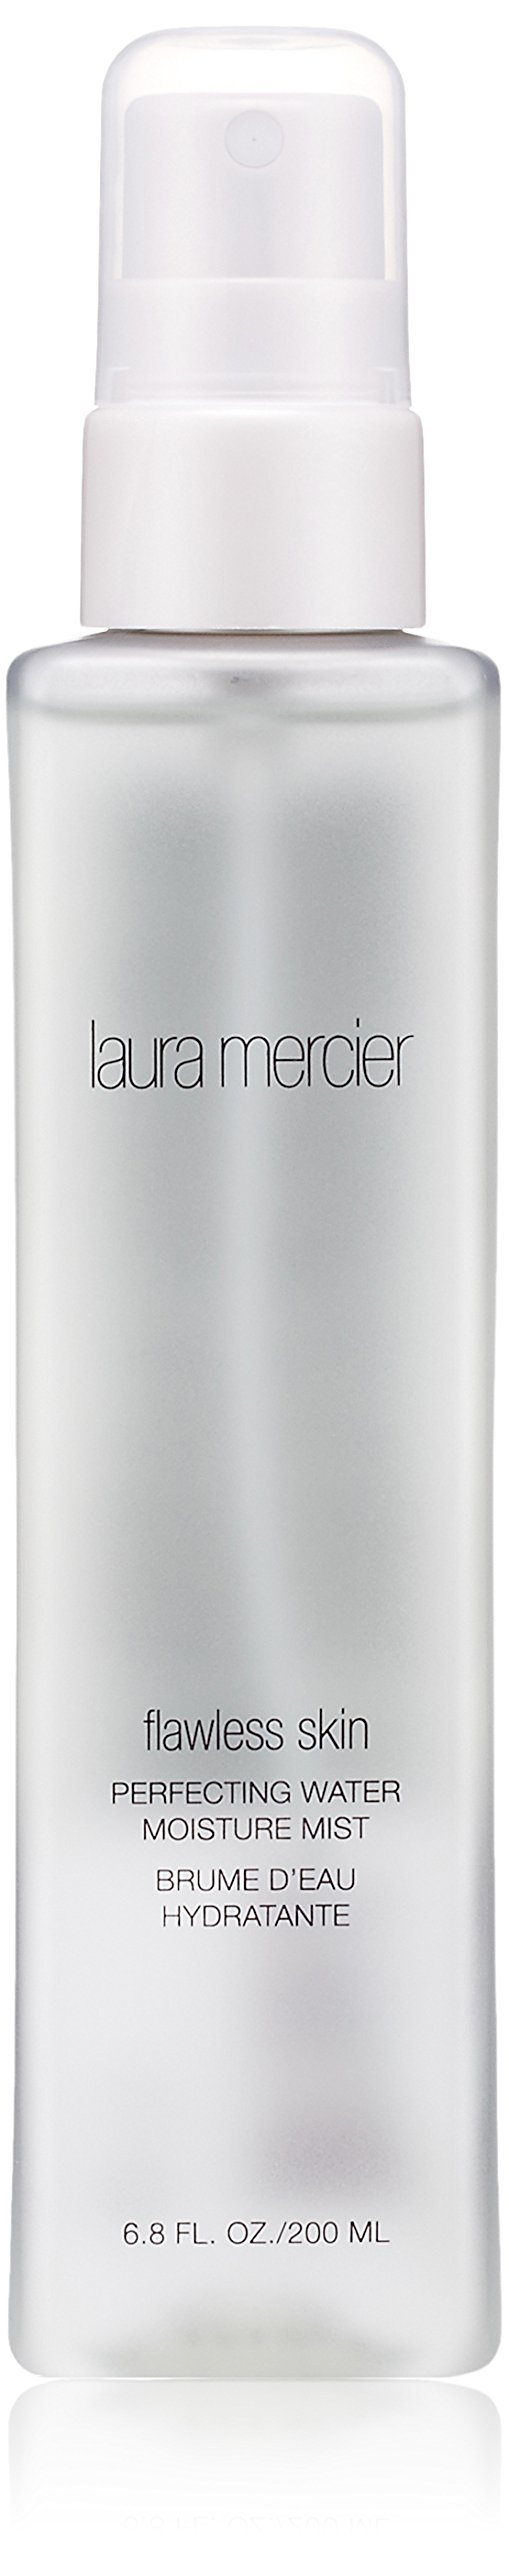 Laura Mercier Flawless Skin Perfecting Water Moisture Mist, 6.8 Ounce